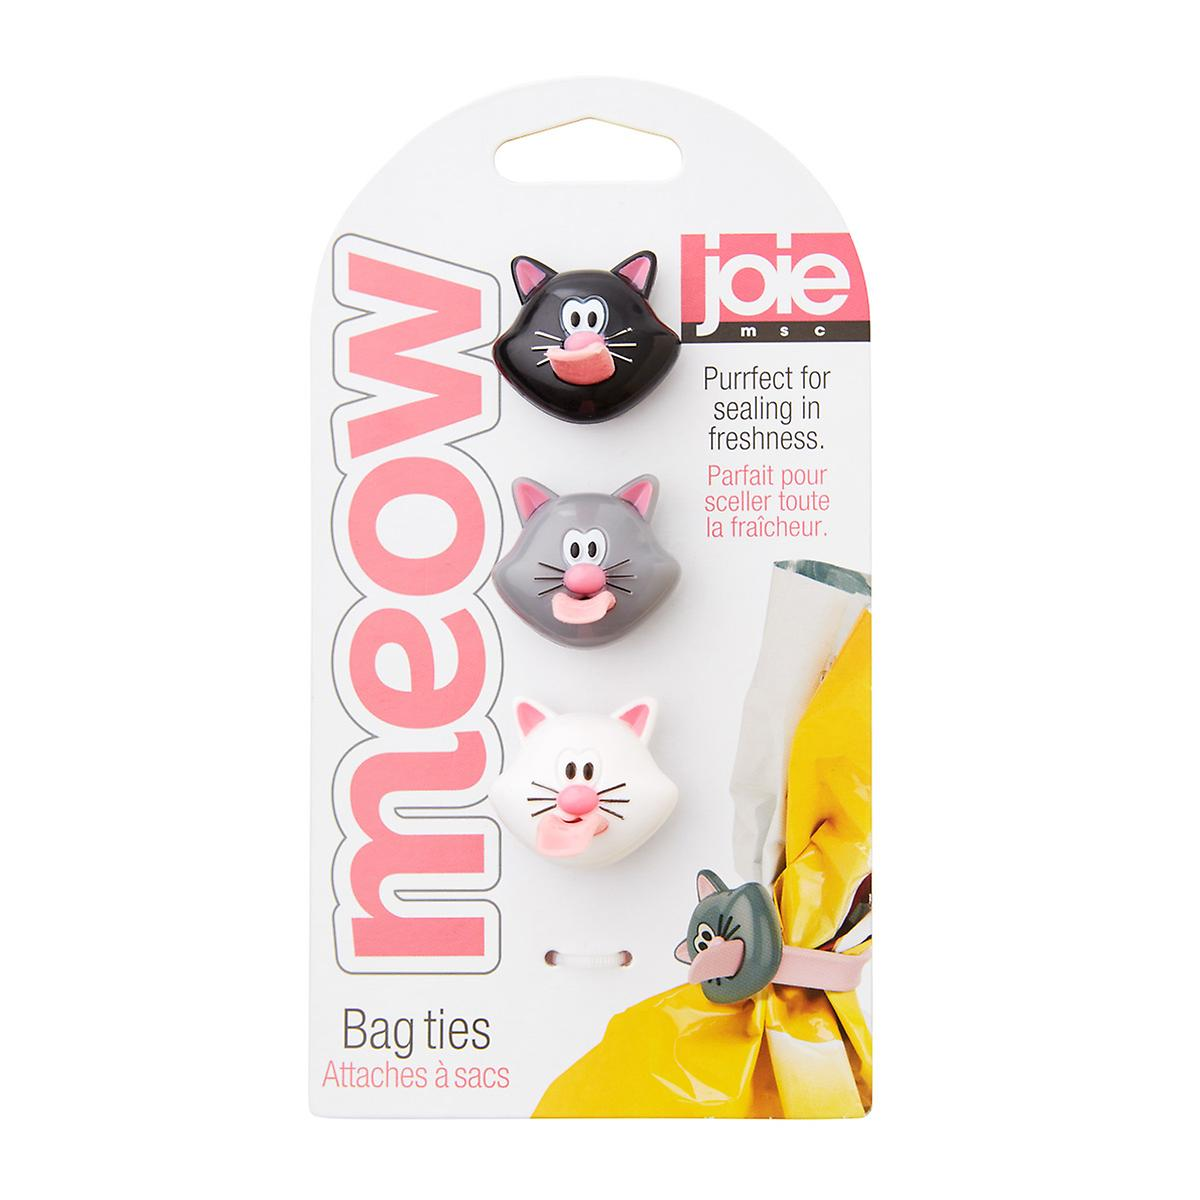 Meow Cat Bag Ties